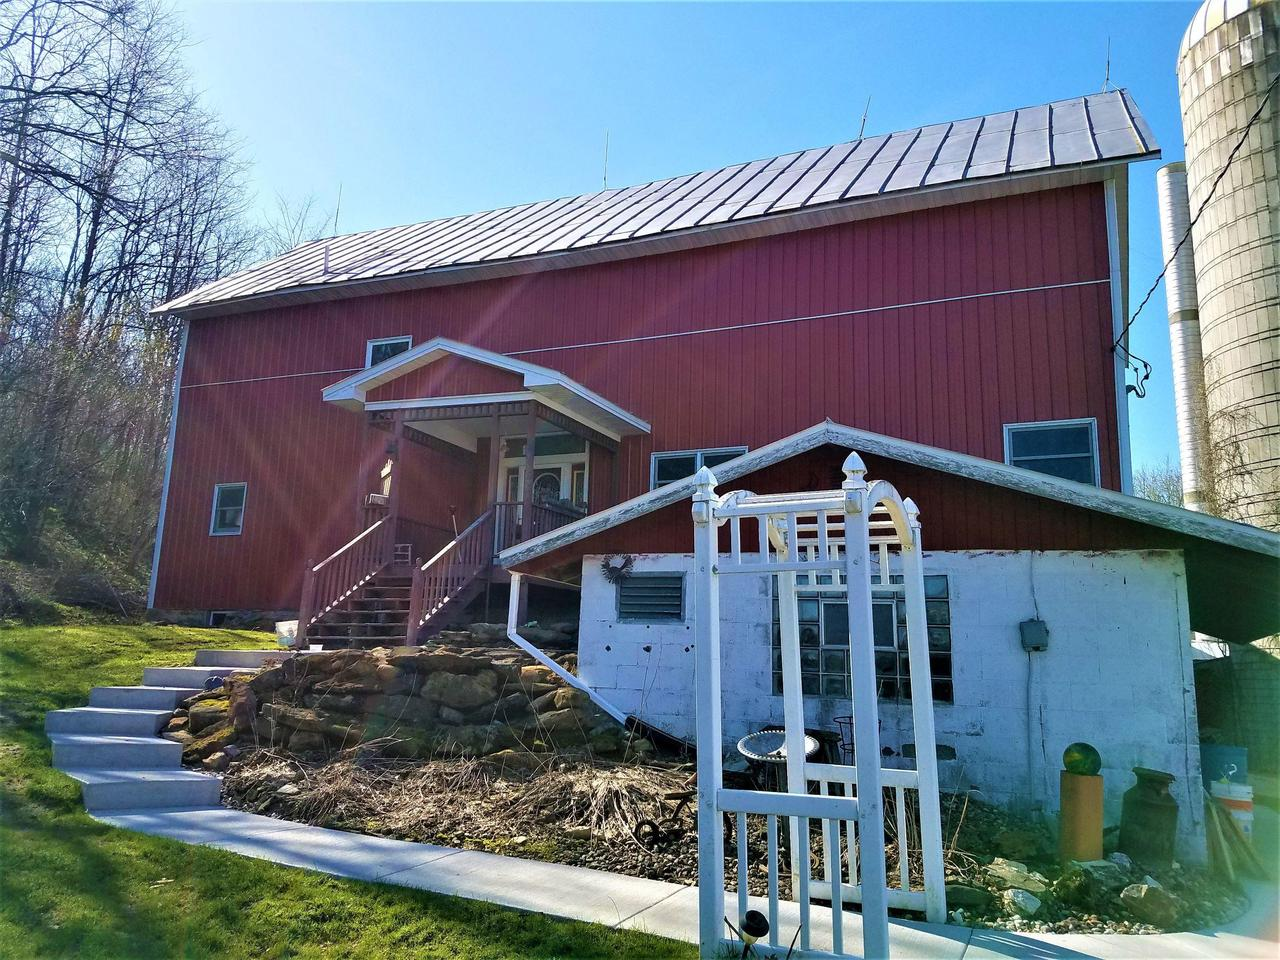 +/- 147 Acres with Barn Home and Buildings On a Dead End Road. This 4 BR 3 Bath Barn Home has an awesome large open layout on the Main Floor great for those large gatherings. The Beautiful Kitchen with an Islands opens up to the Living Room with an Amazing Fireplace. The 20x15 Master Bed with Vaulted Ceilings puts it over the top with a 11.5 x 7 walk in Closet. The property has multiple places for storing your toys including a 80x45 Pole Shed. The property is Located in QDMA neighborhood, with great success of bucks taken as well. The back 147 Acres has 9 small fields consisting from 2 acres field up to 6 acres fields. This gives you plenty of opportunities to be creative. The property has a fenced pasture and great trail access to accommodate any horse rider.